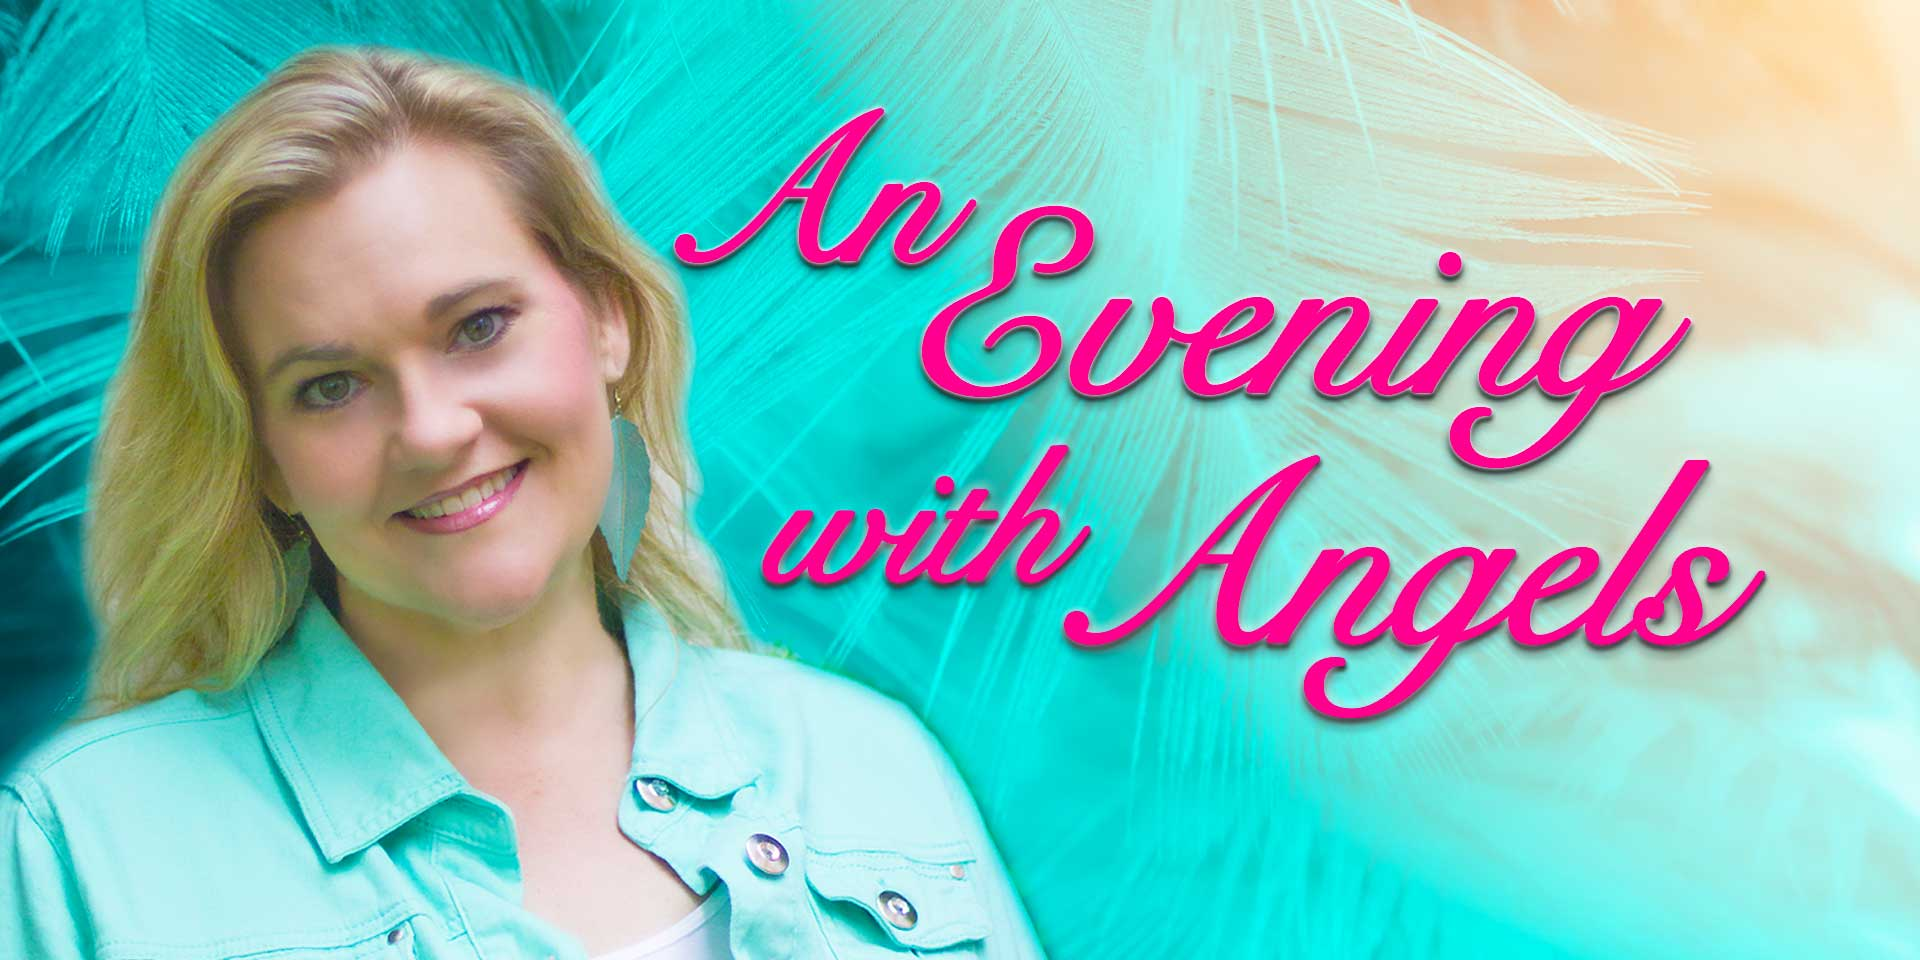 An Evening with Angels with Heather Hildebrand